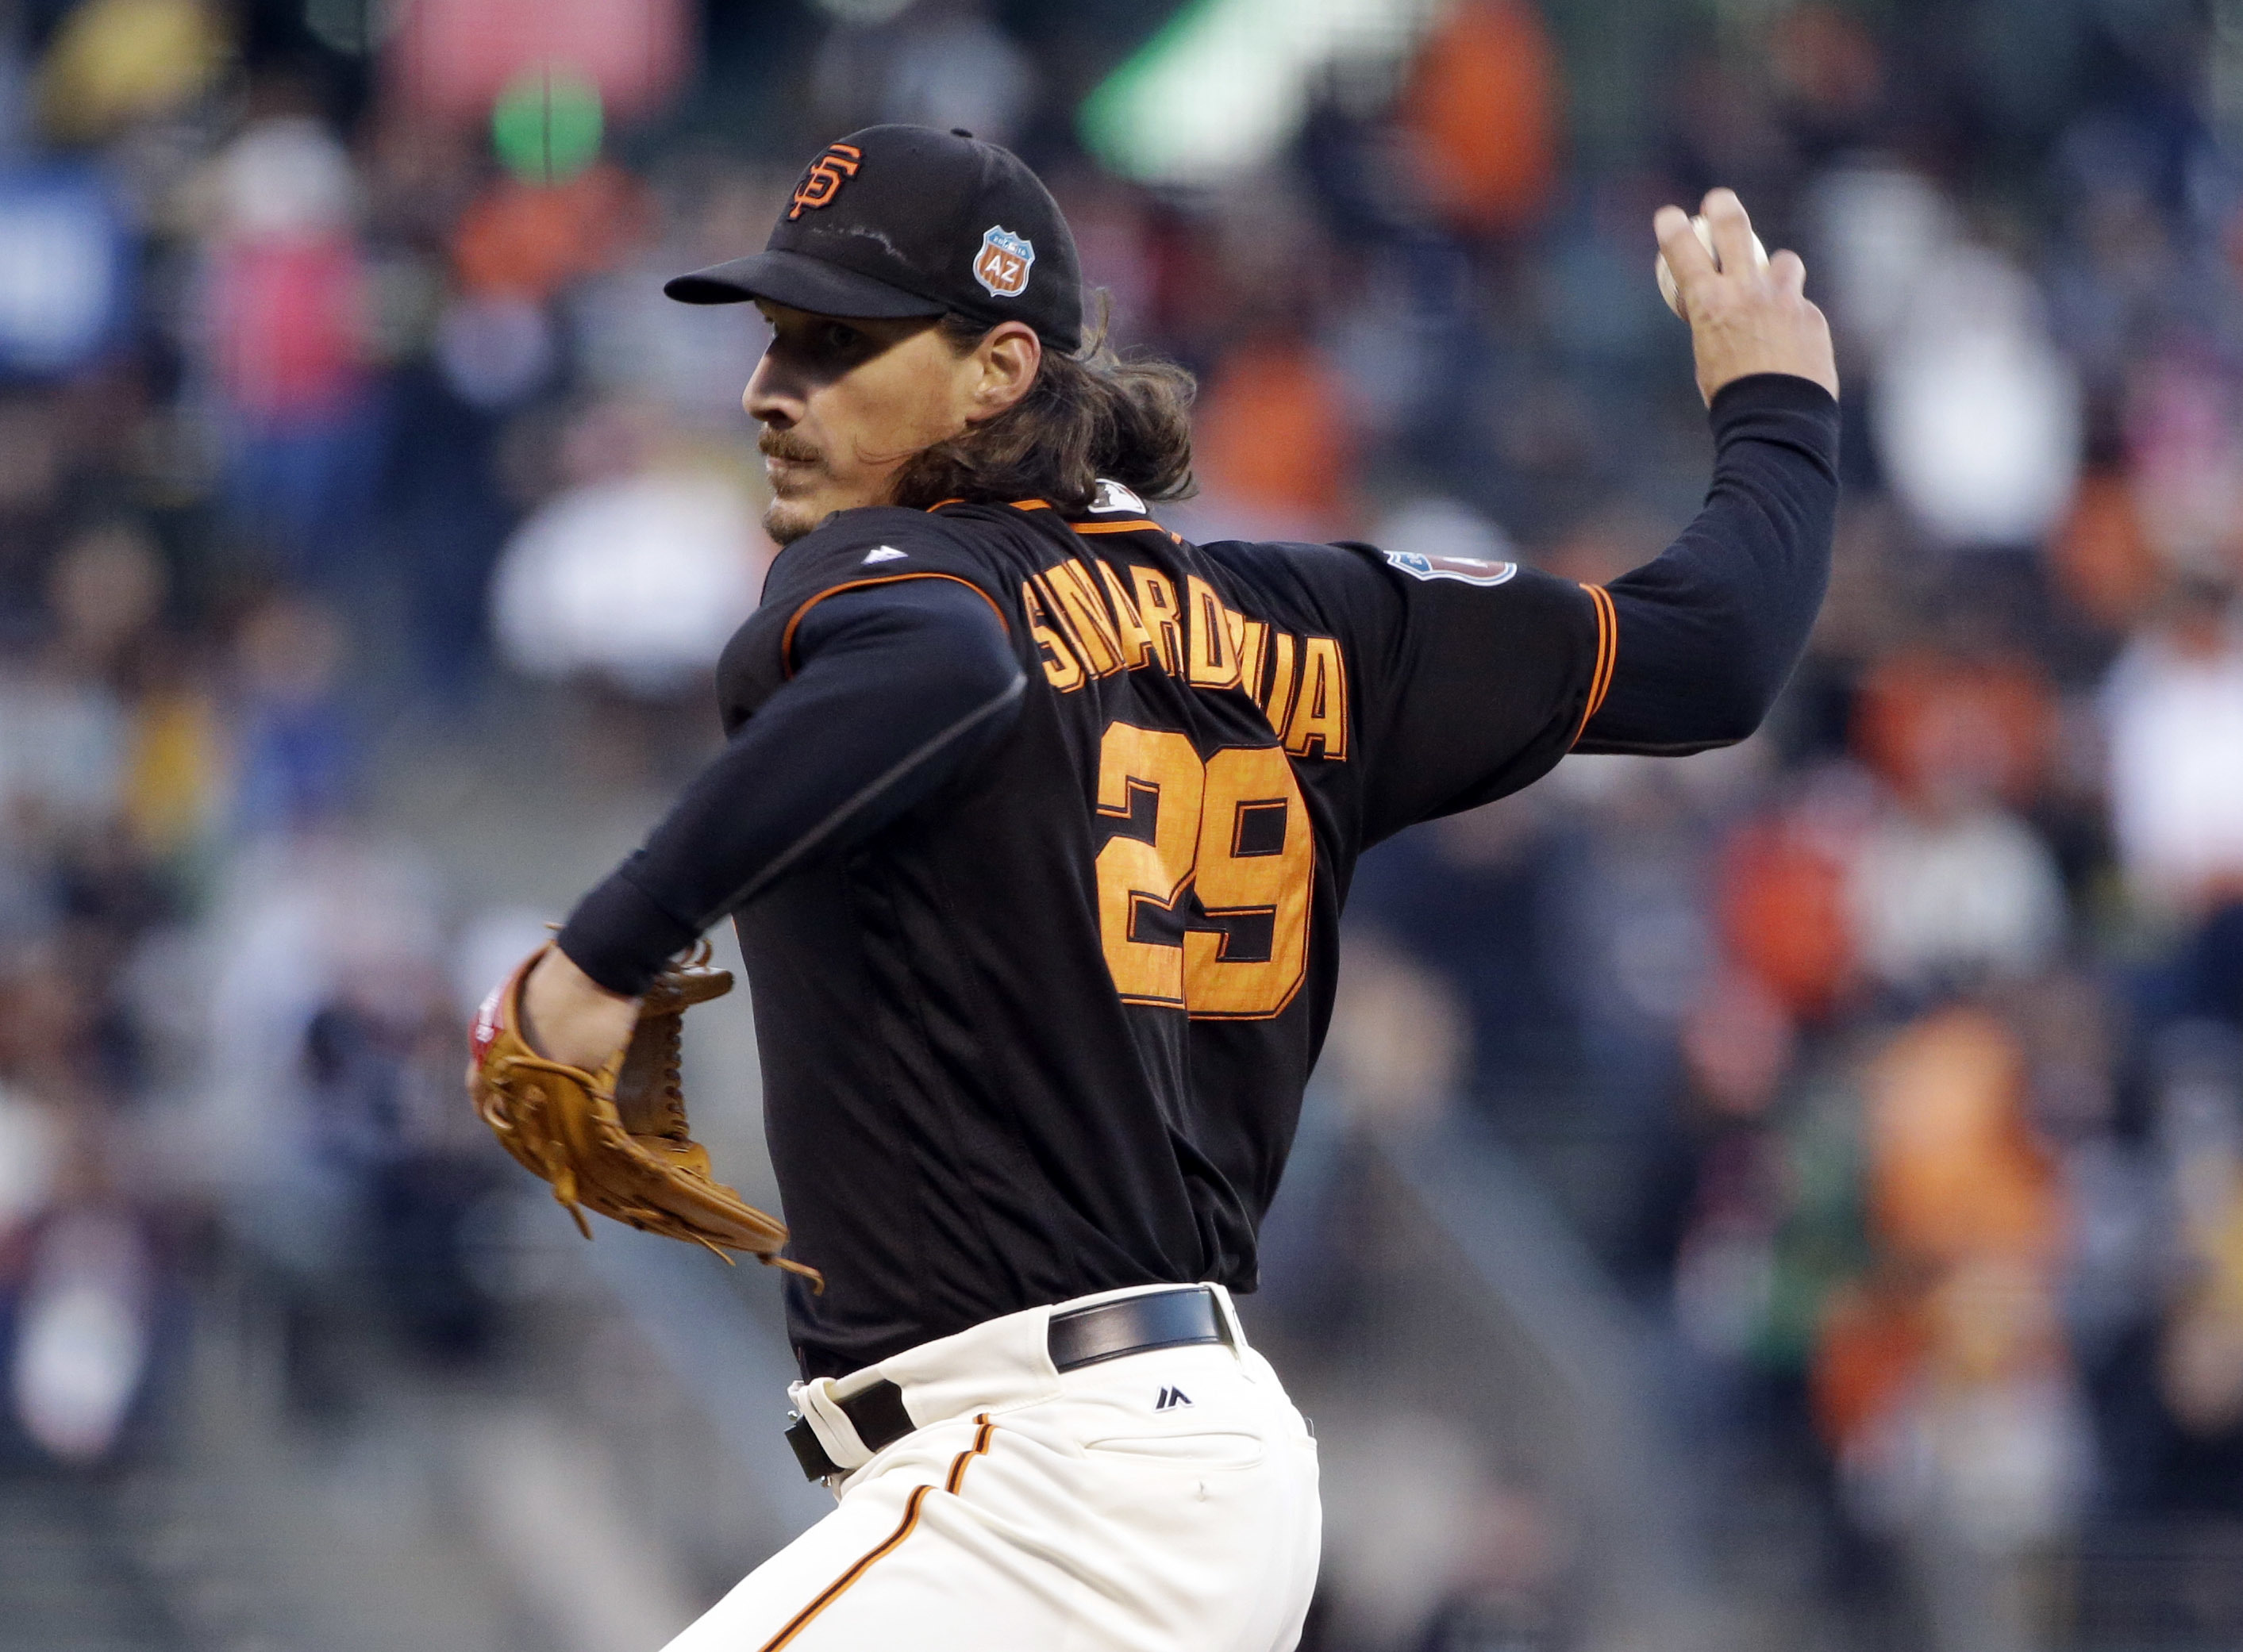 San Francisco Giants starting pitcher Jeff Samardzija throws to the Oakland Athletics during the first inning of an exhibition baseball game Thursday, March 31, 2016, in San Francisco. (AP Photo/Marcio Jose Sanchez)